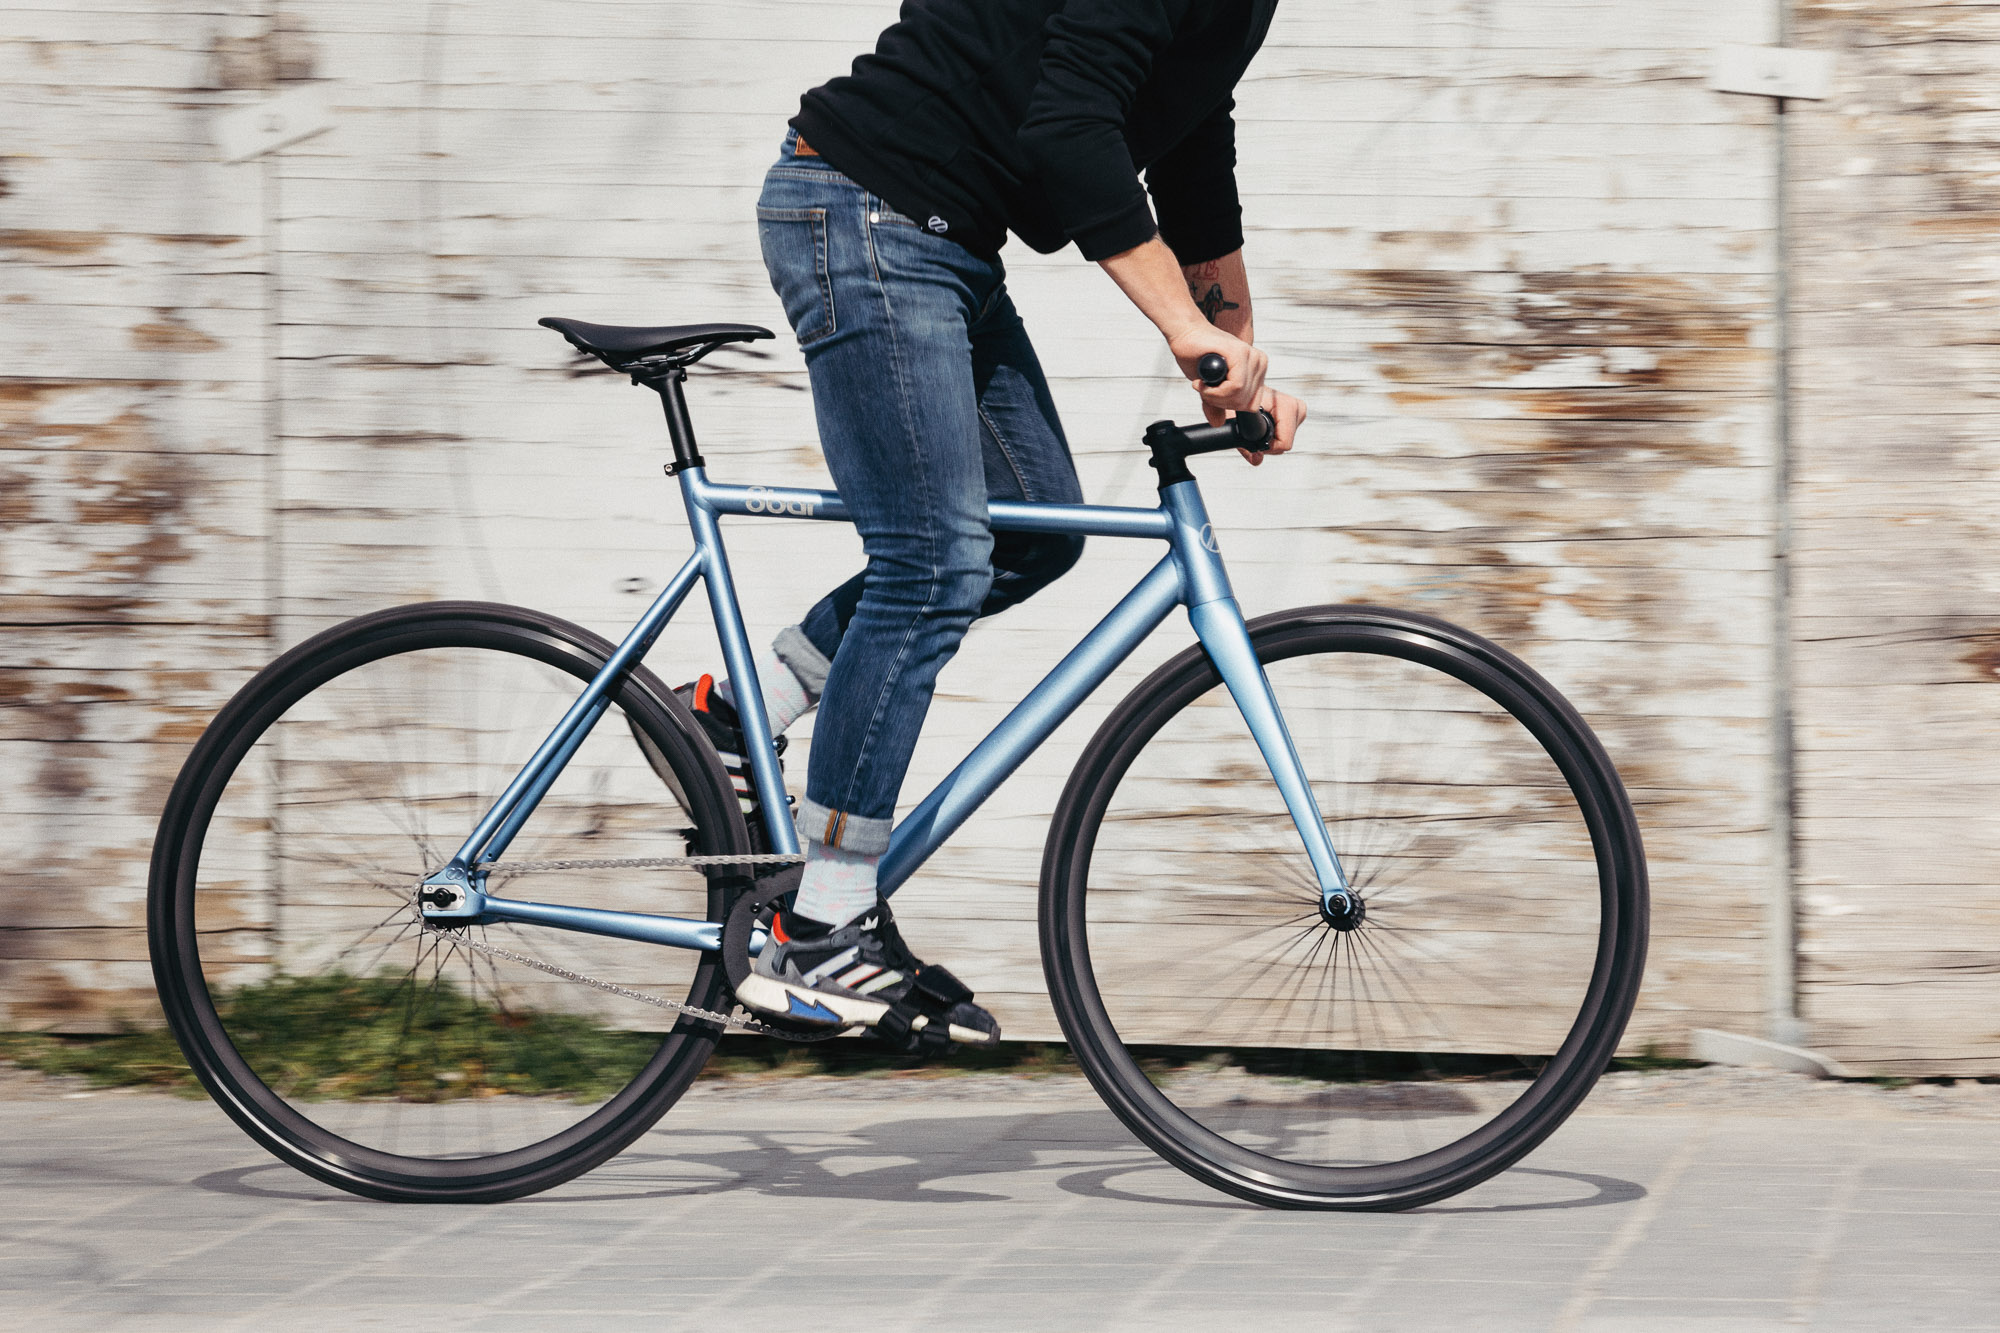 8bar-complete-bike-krzberg-v7-blue-fixie-fixed-gear-lr-7